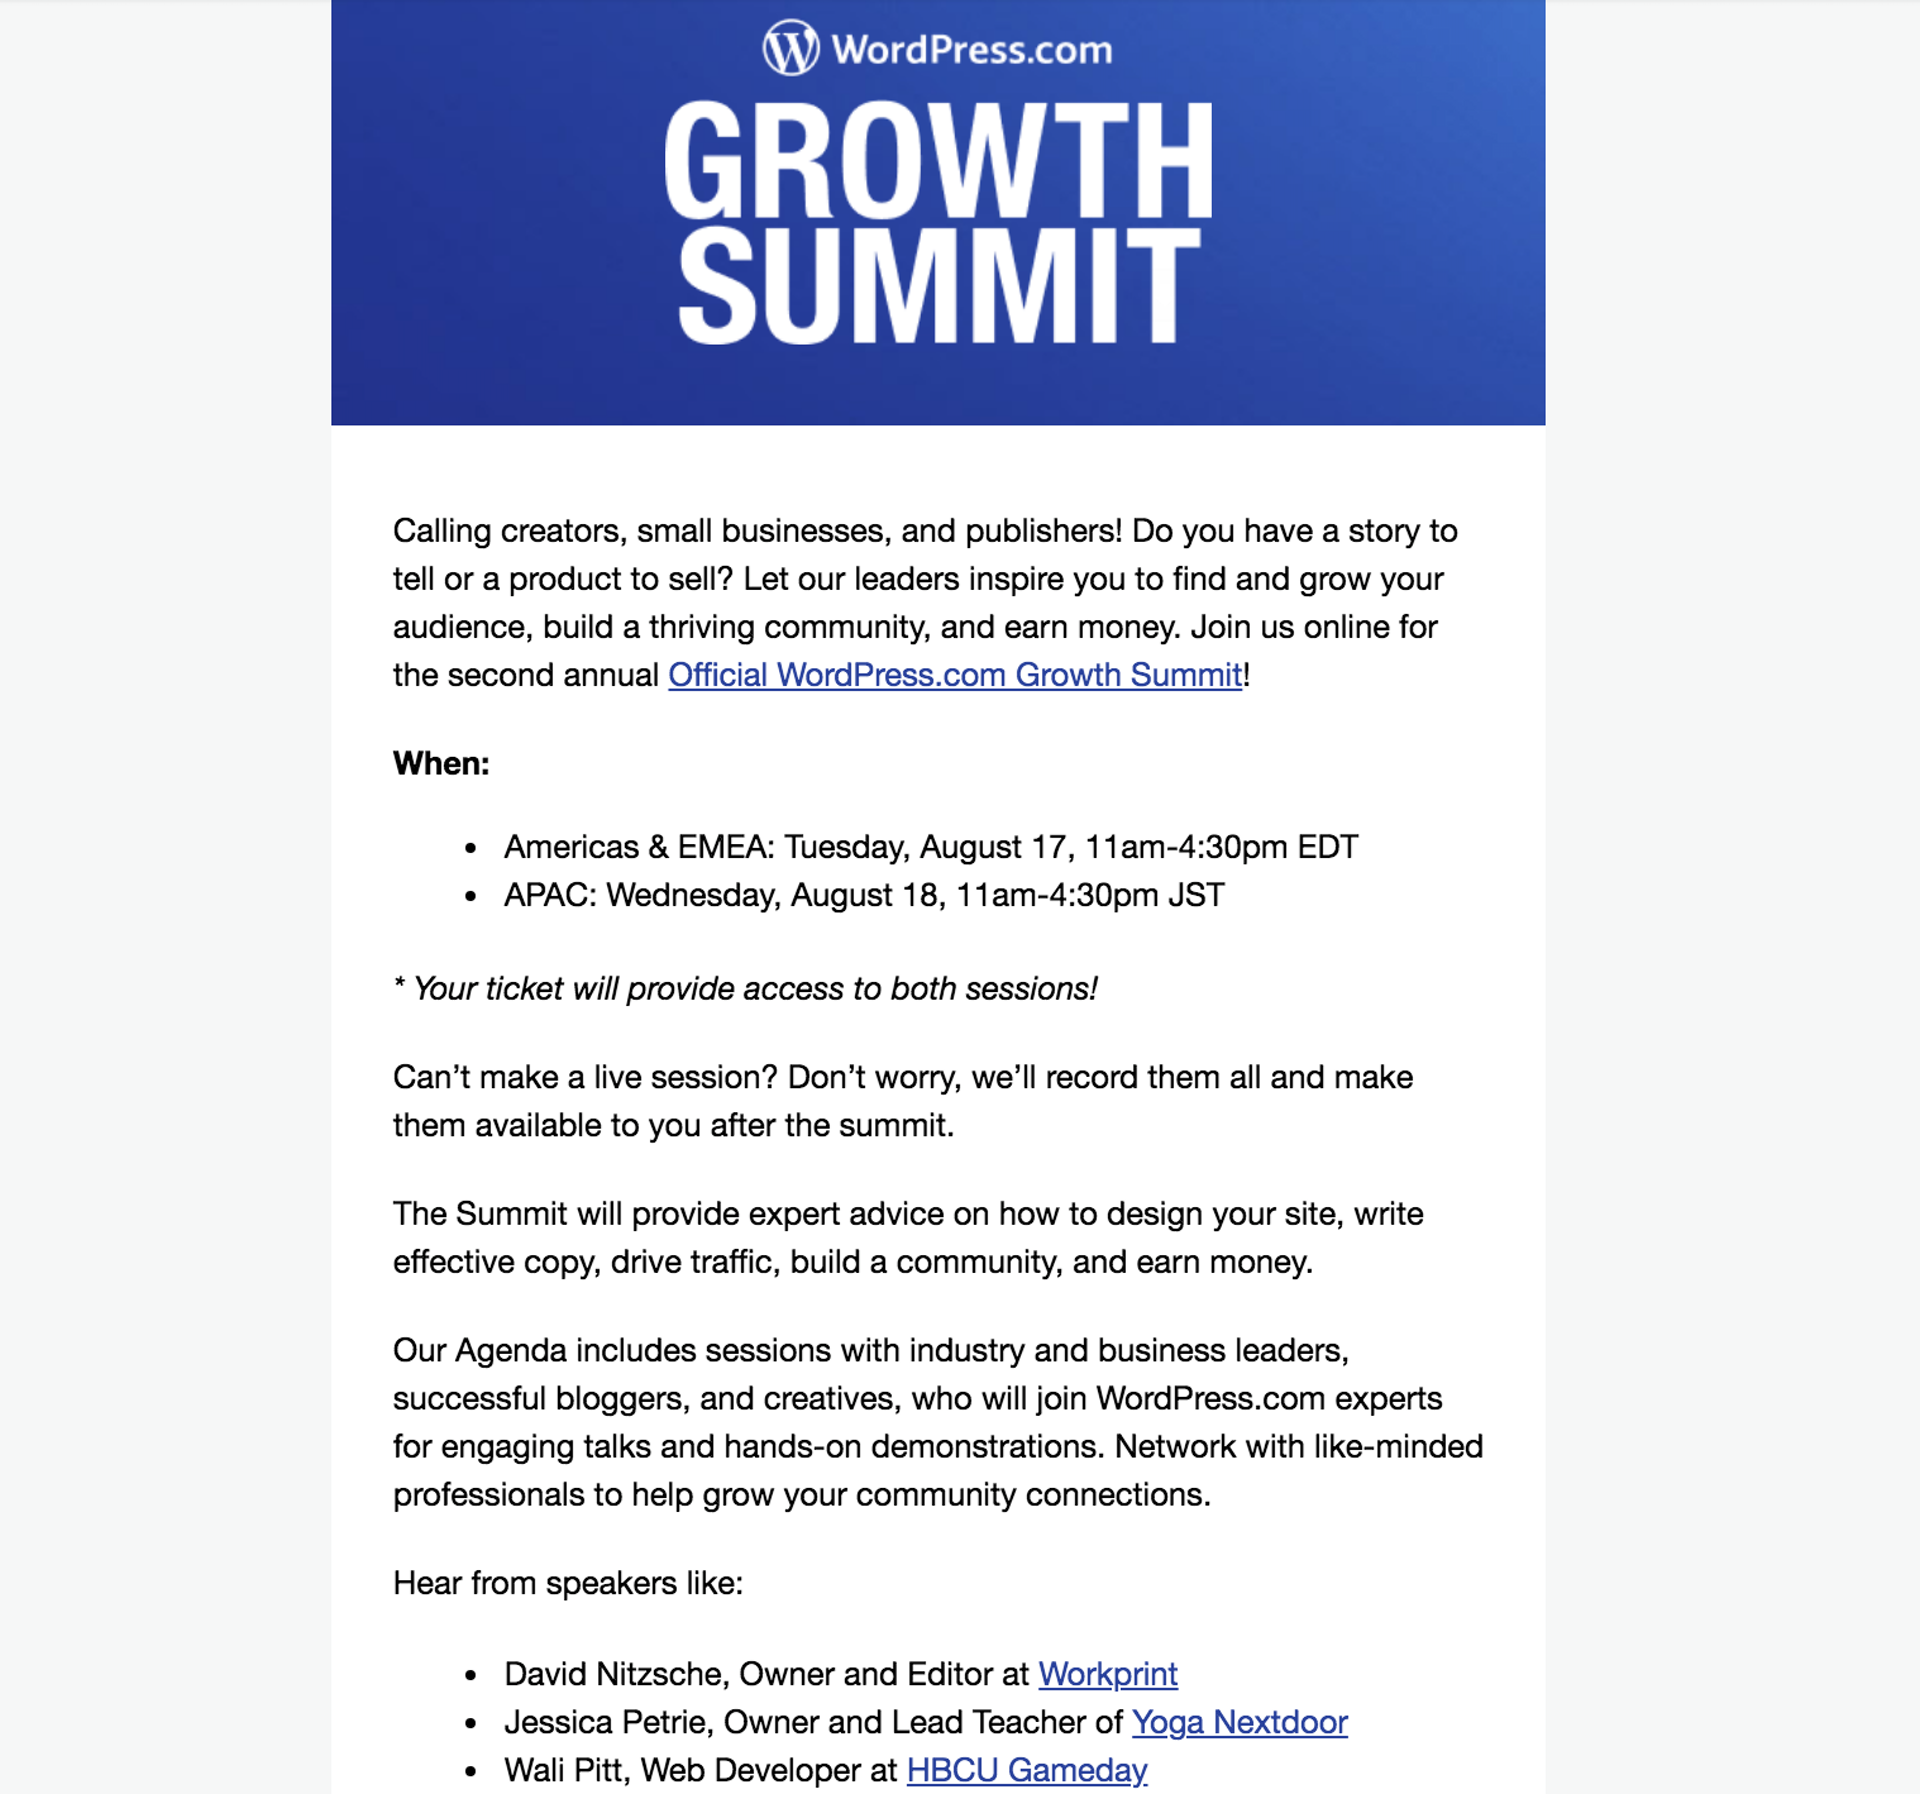 Webinar invitation example from WordPress Growth Summit event in 2021.